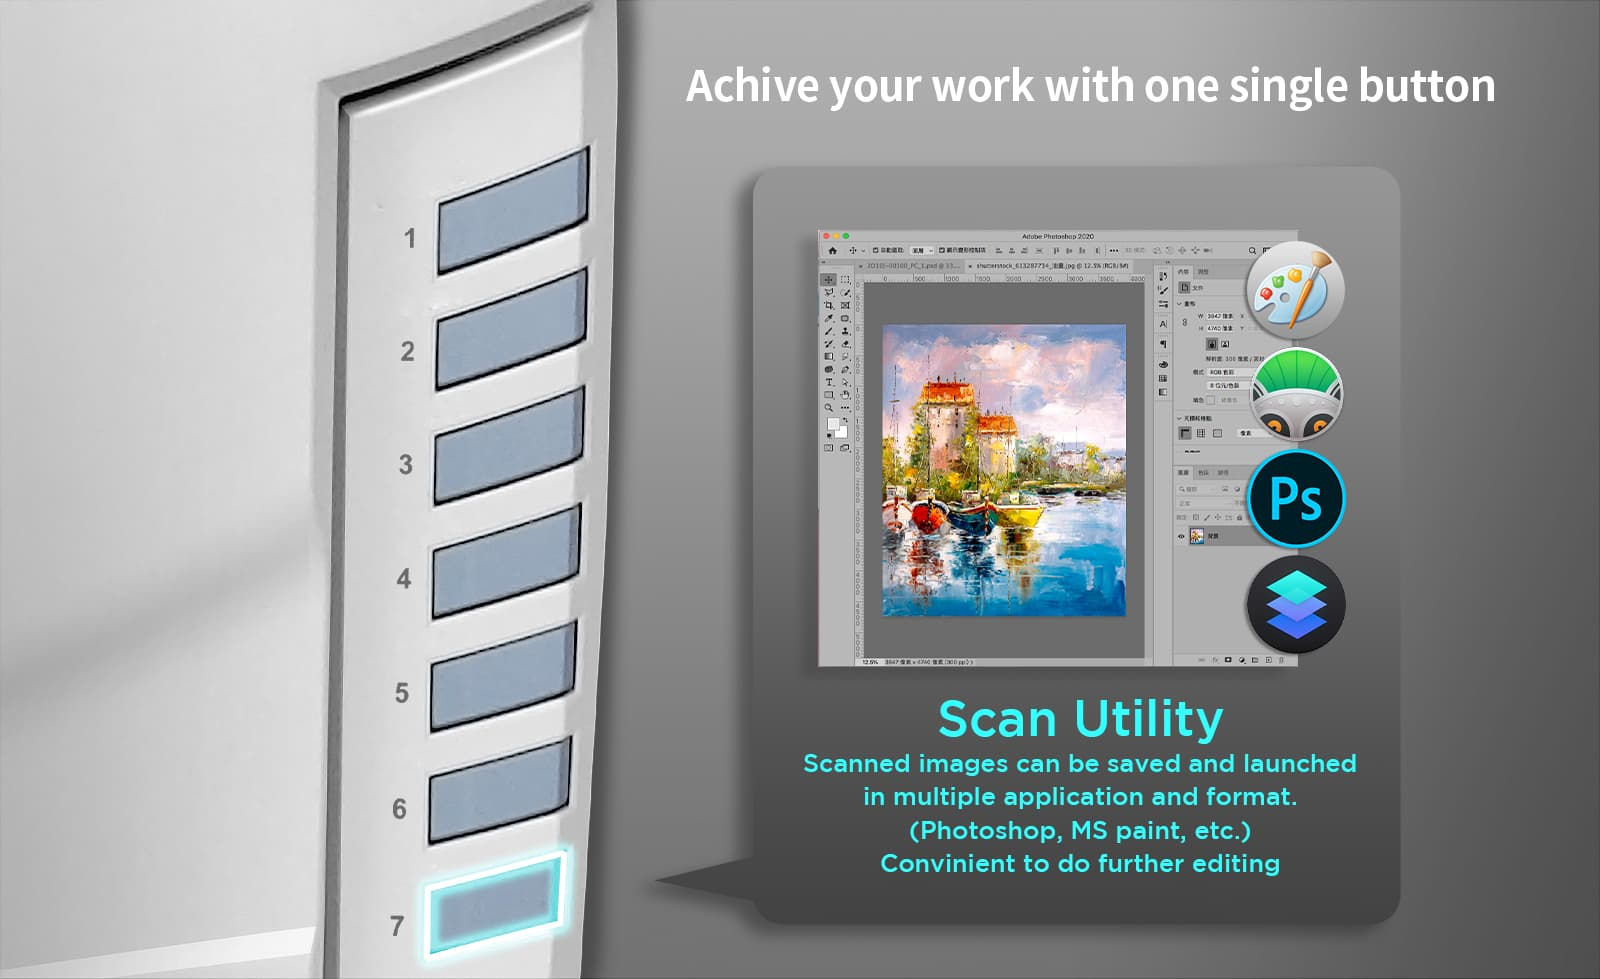 Scan button: Scan and send your image to selected editing software, such as Print or Photoshop.